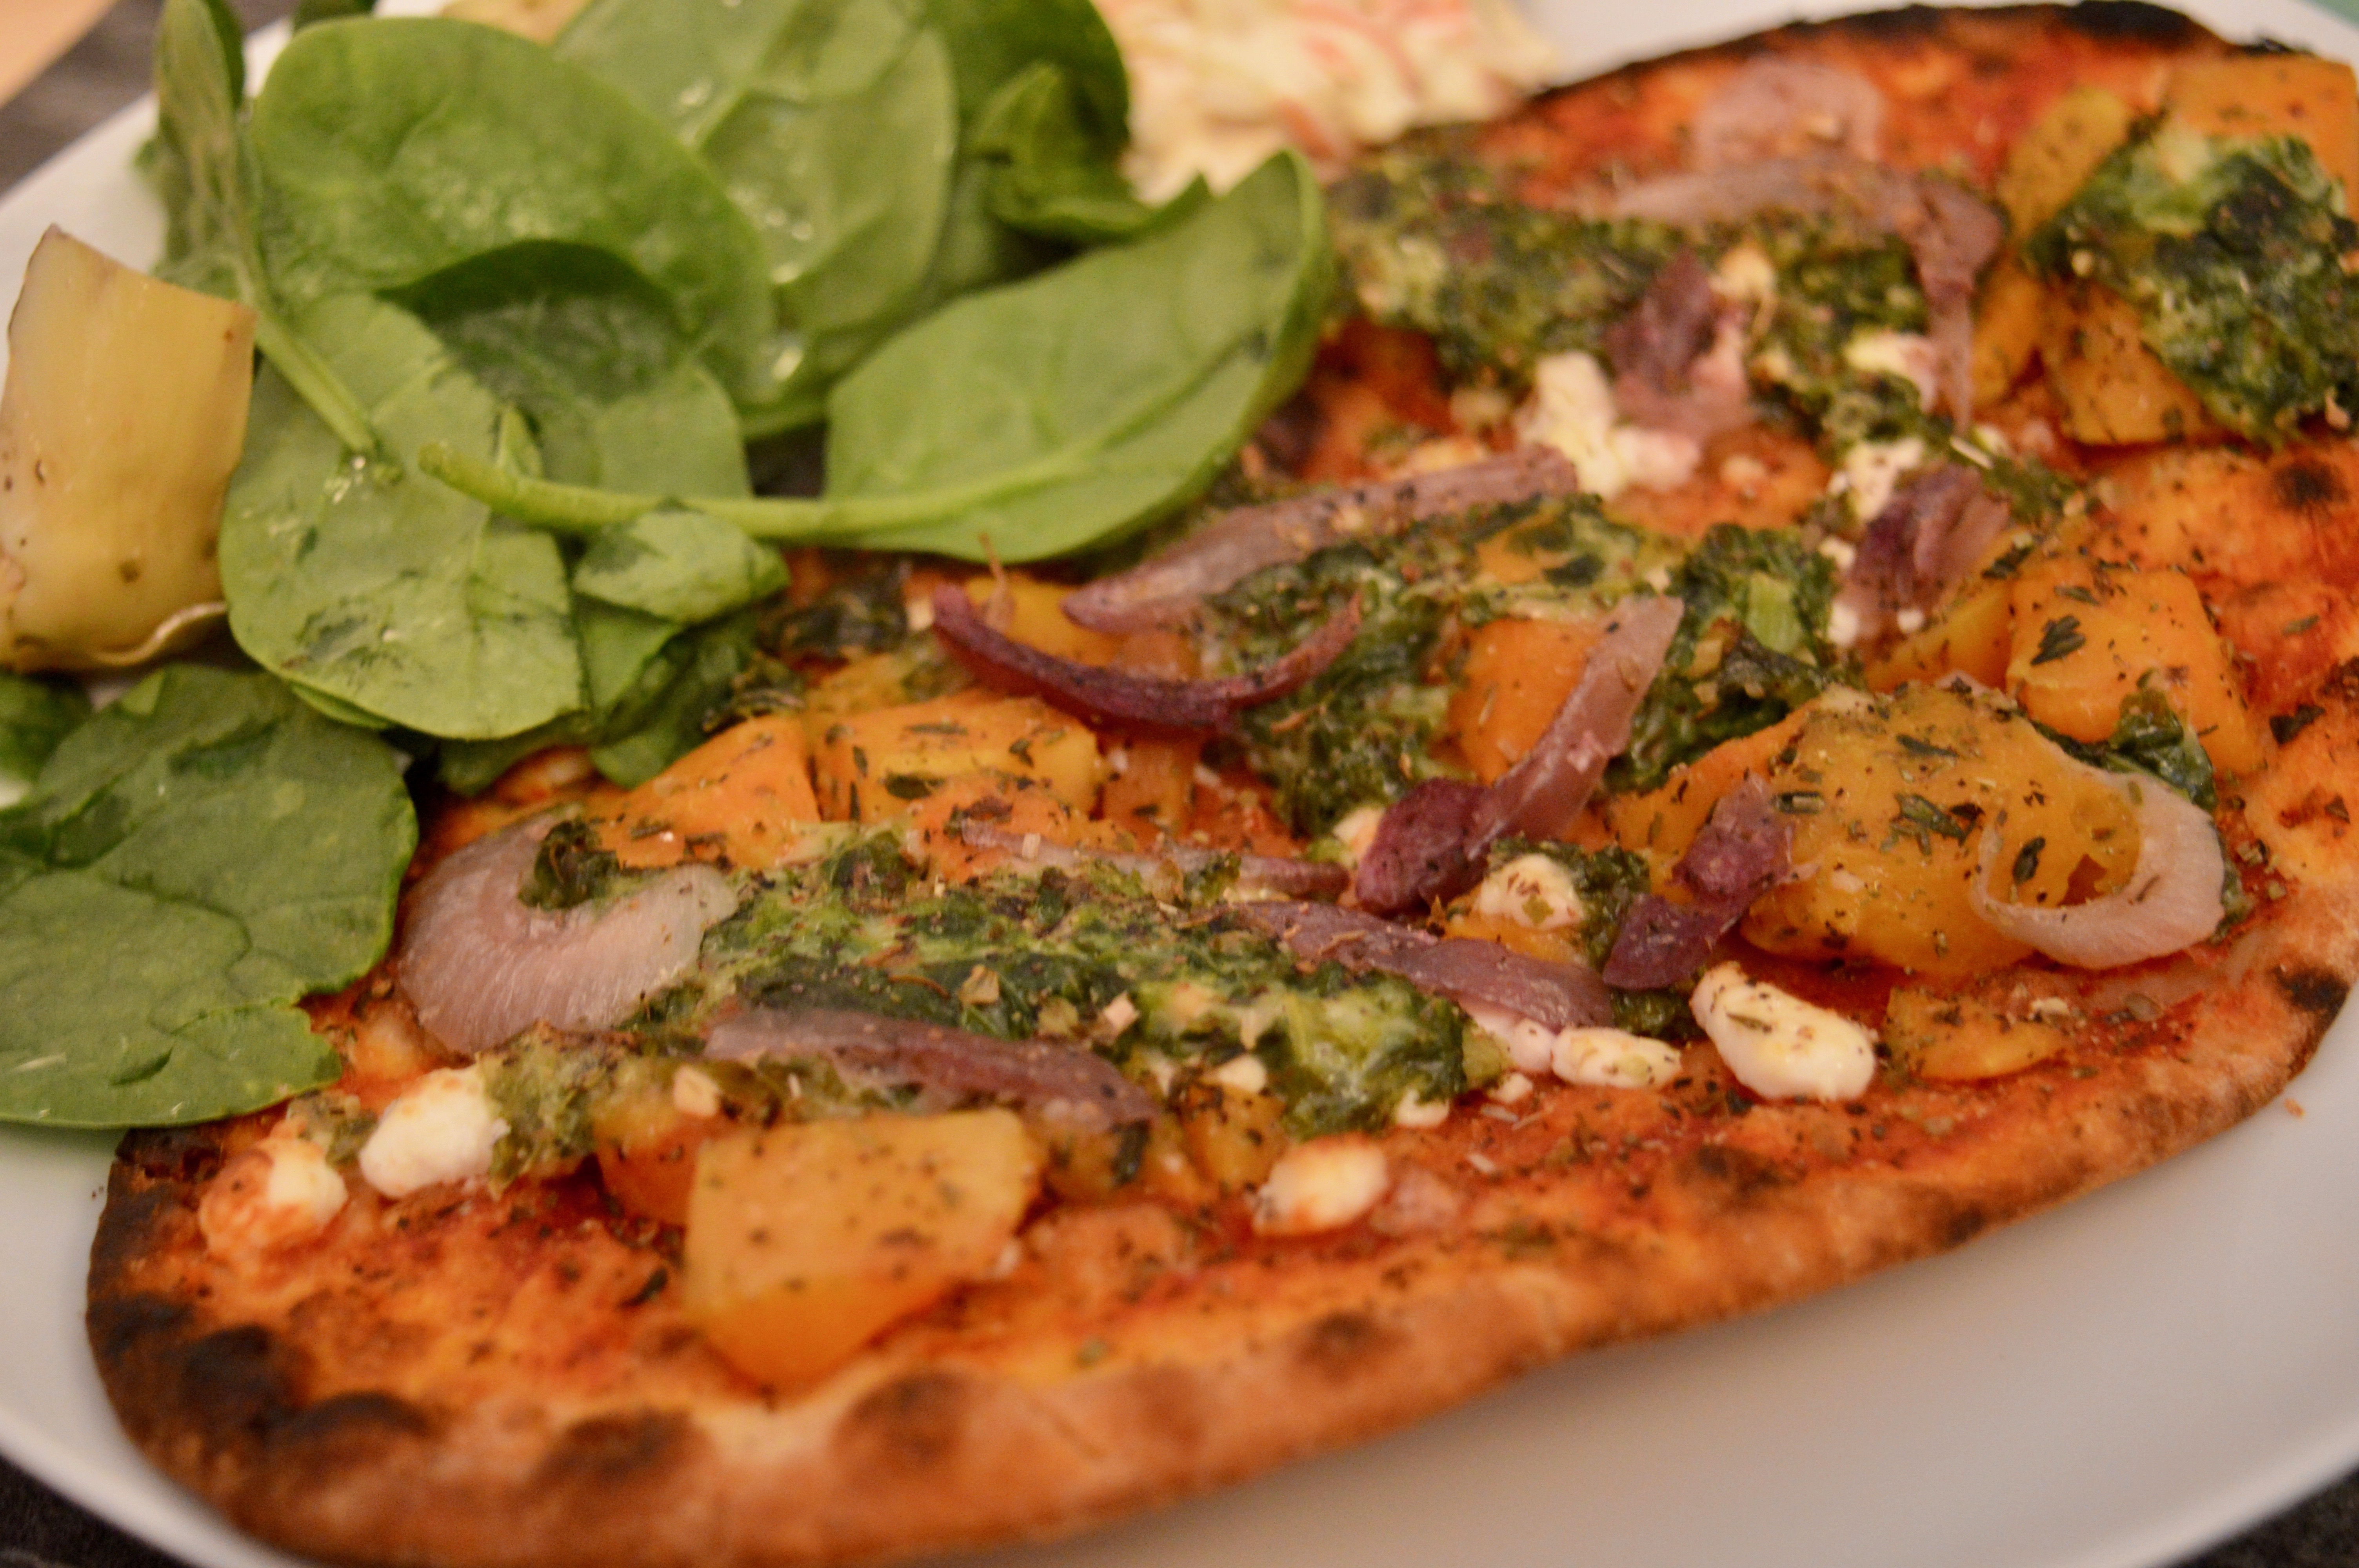 Pizza Express Leggera | Lighter Pizza Base | Healthy Choices | Elle Blonde Luxury Lifestyle Destination Blog